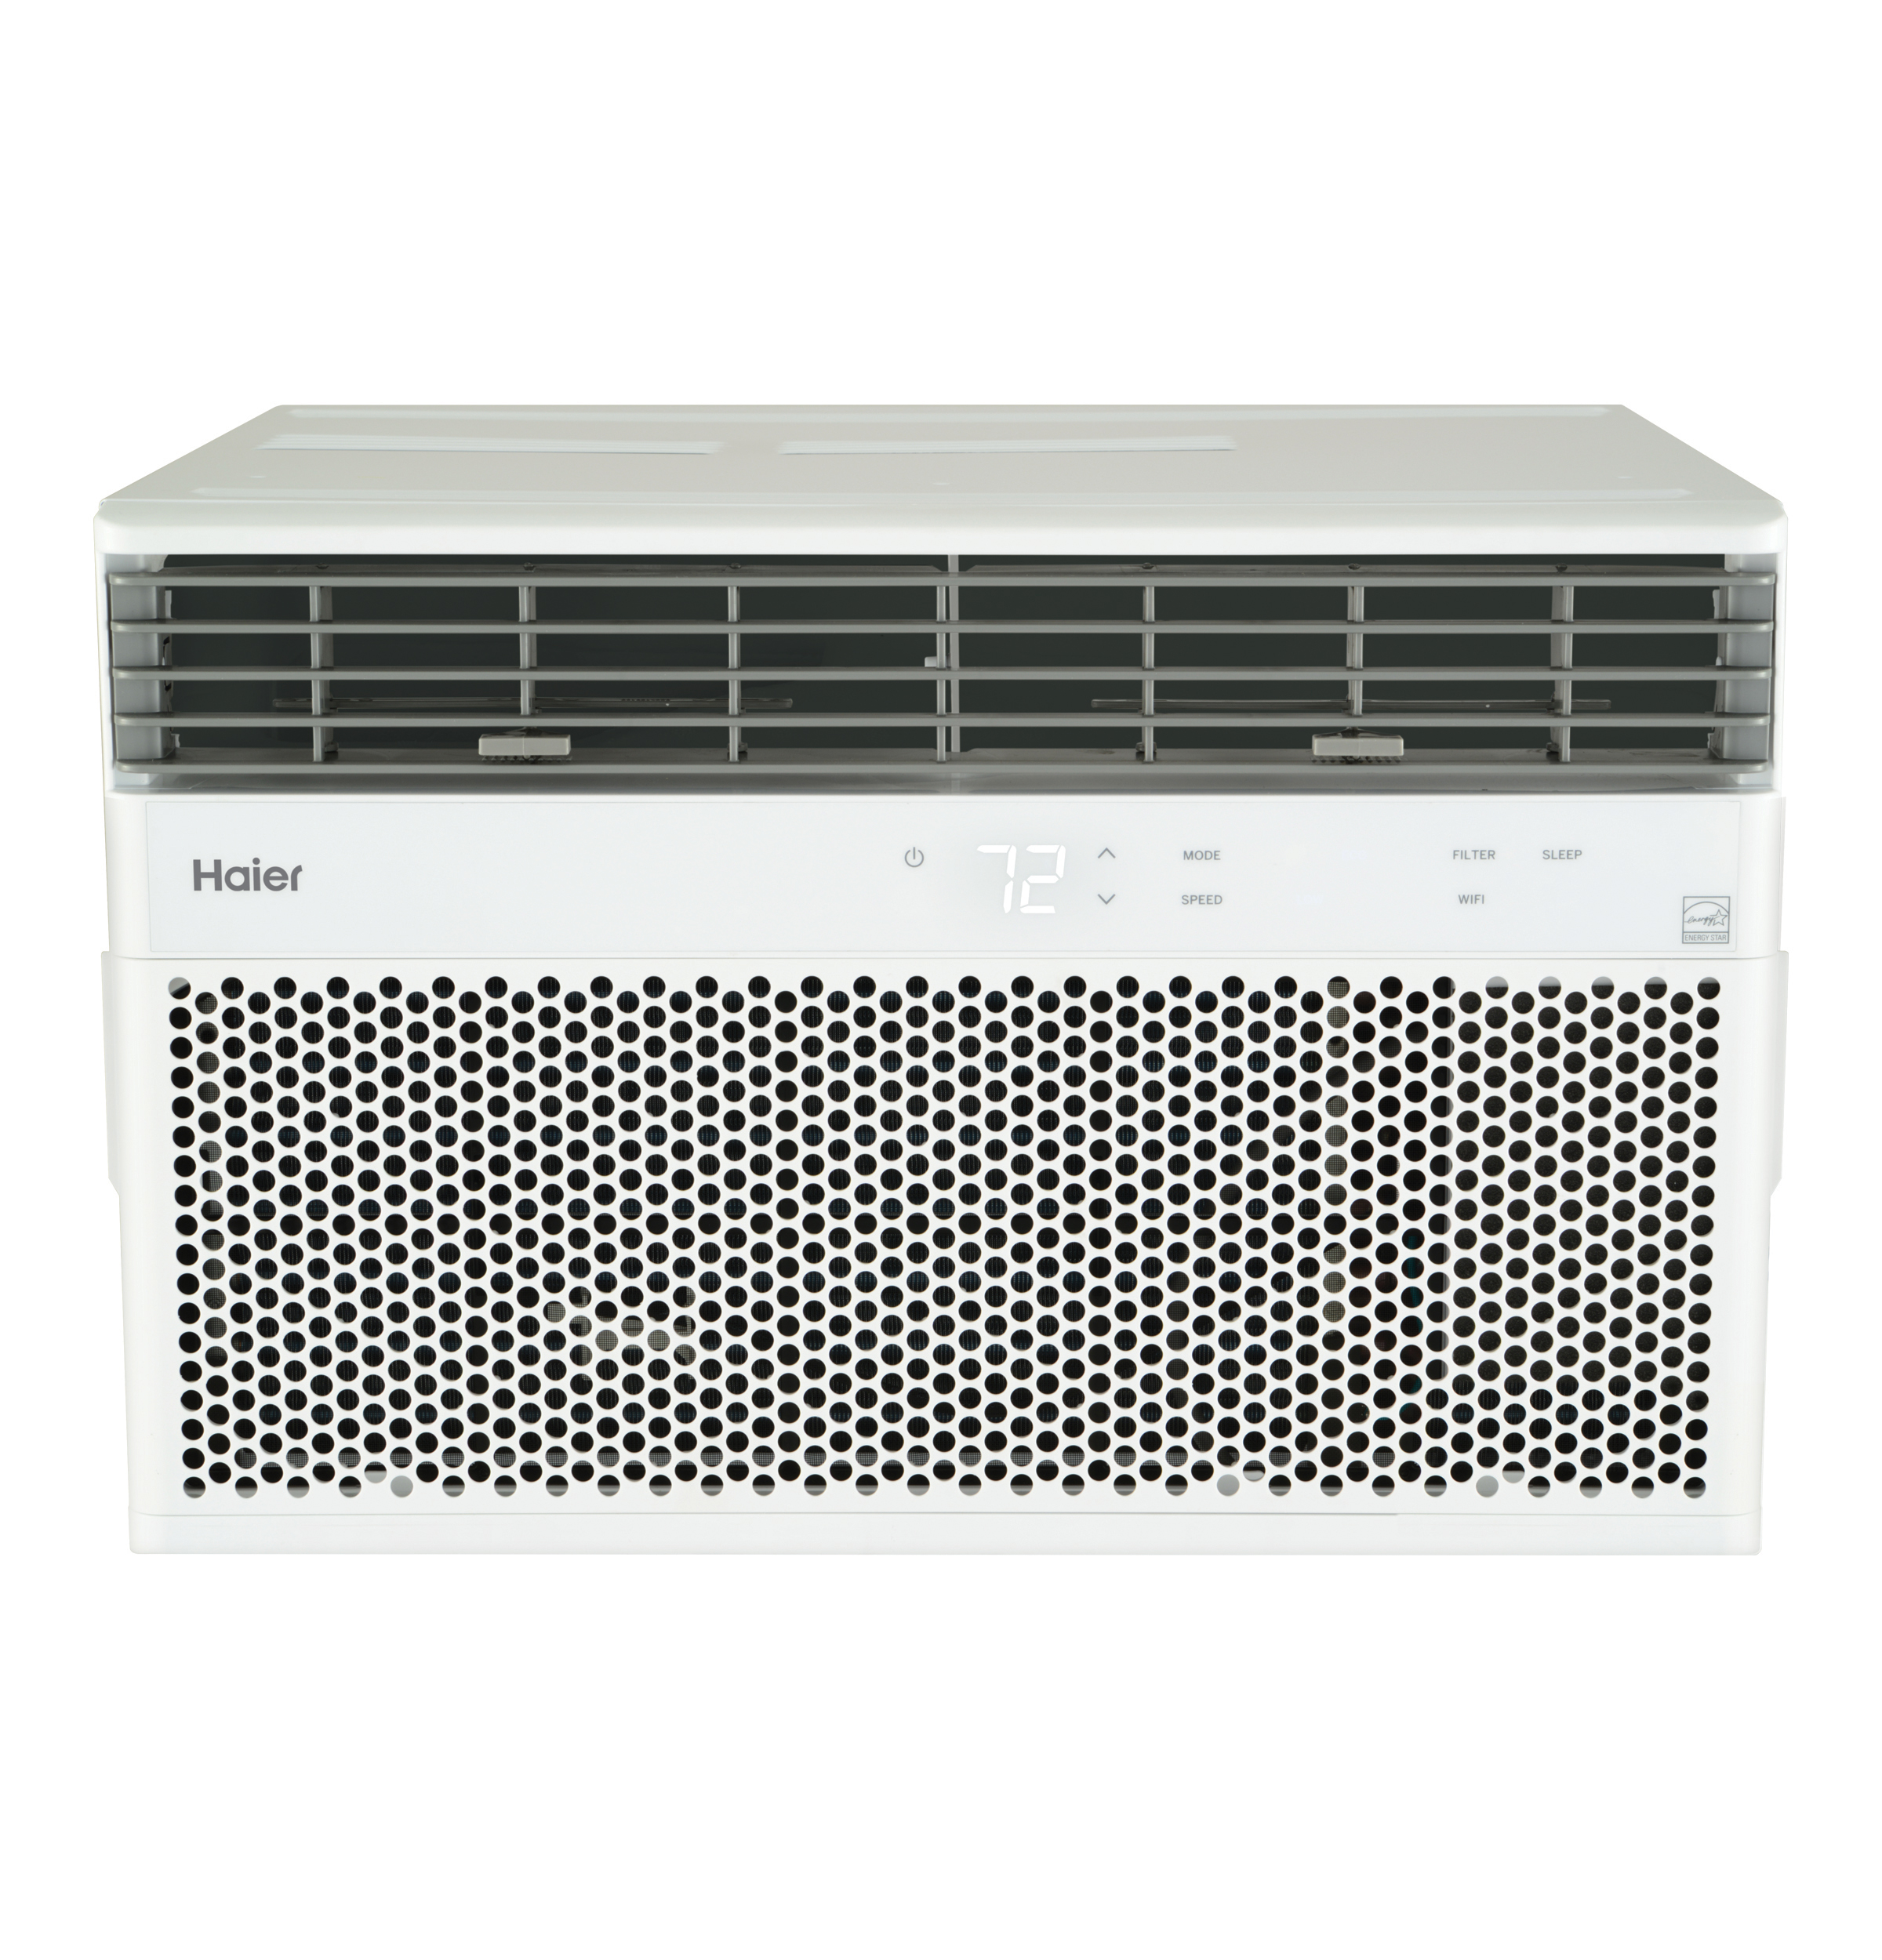 Haier Haier® ENERGY STAR® 8,000 BTU Smart Electronic Window Air Conditioner for Medium Rooms up to 350 sq. ft.